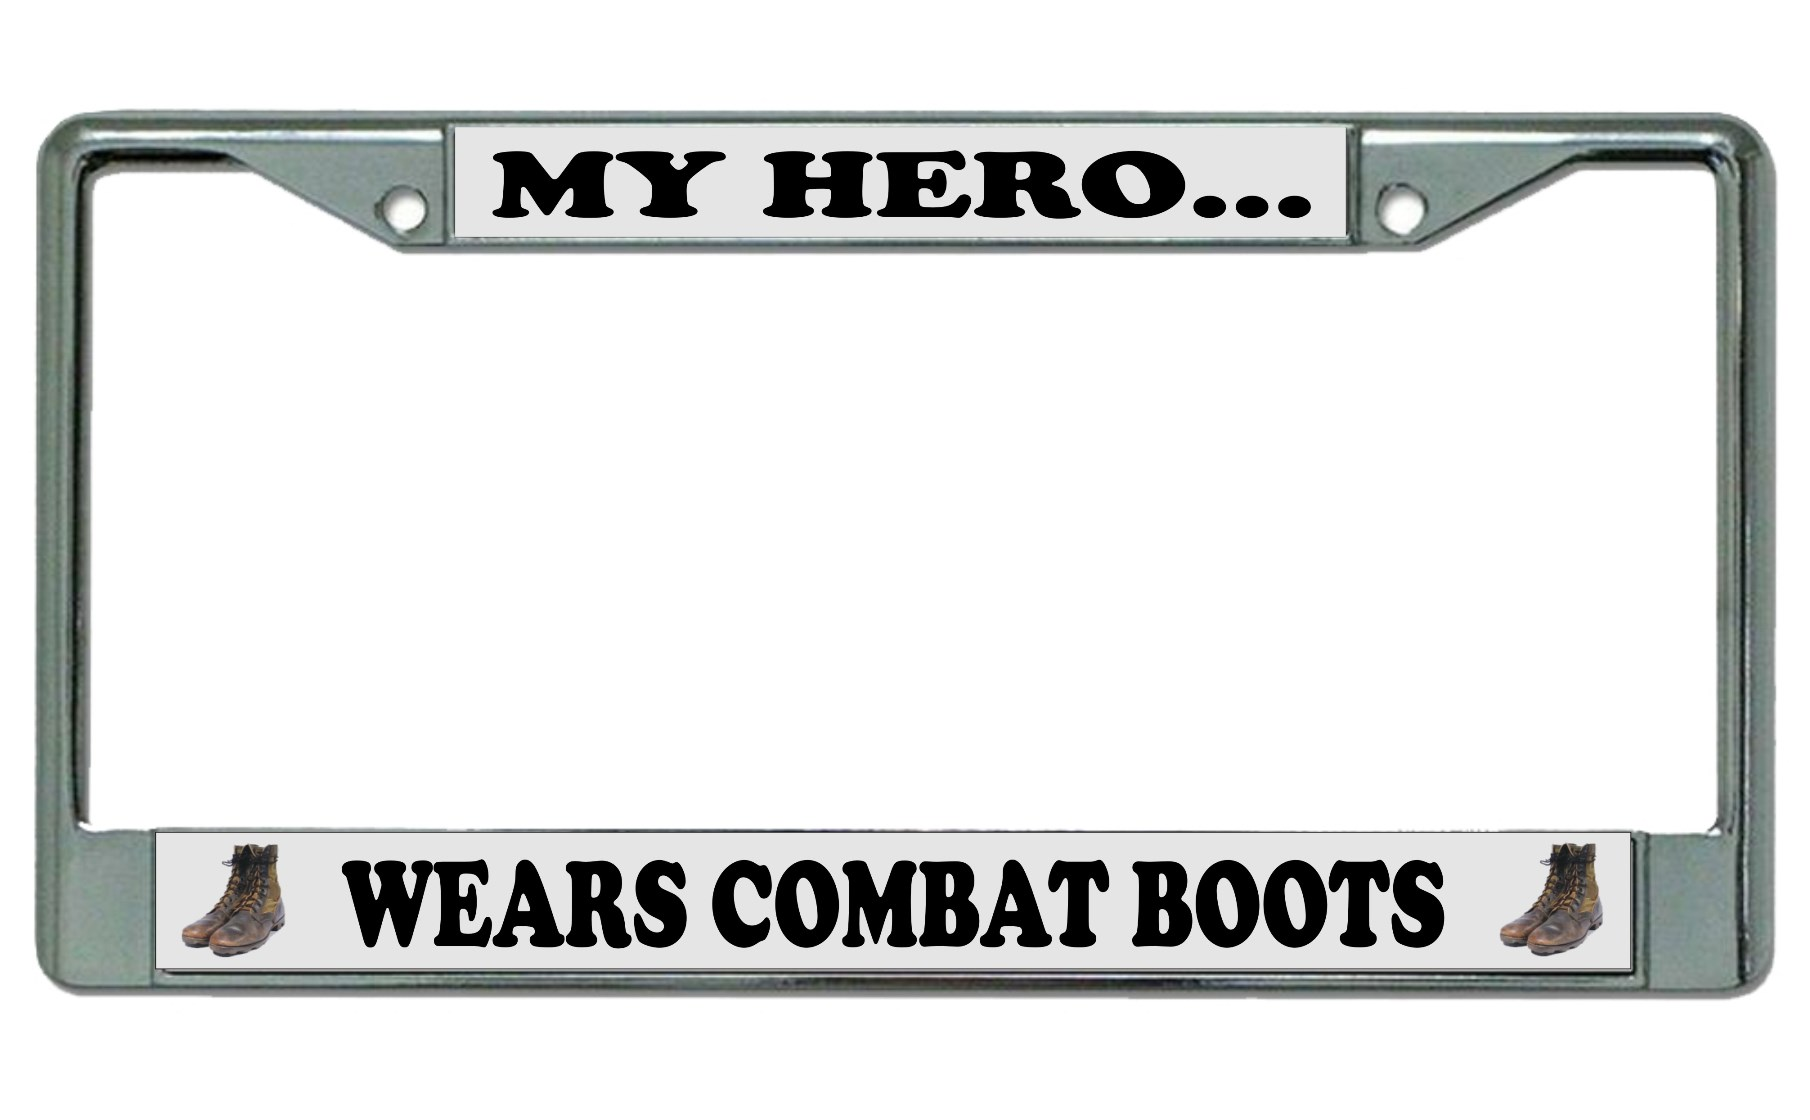 My Hero Wears Combat BOOTS Chrome License Plate Frame